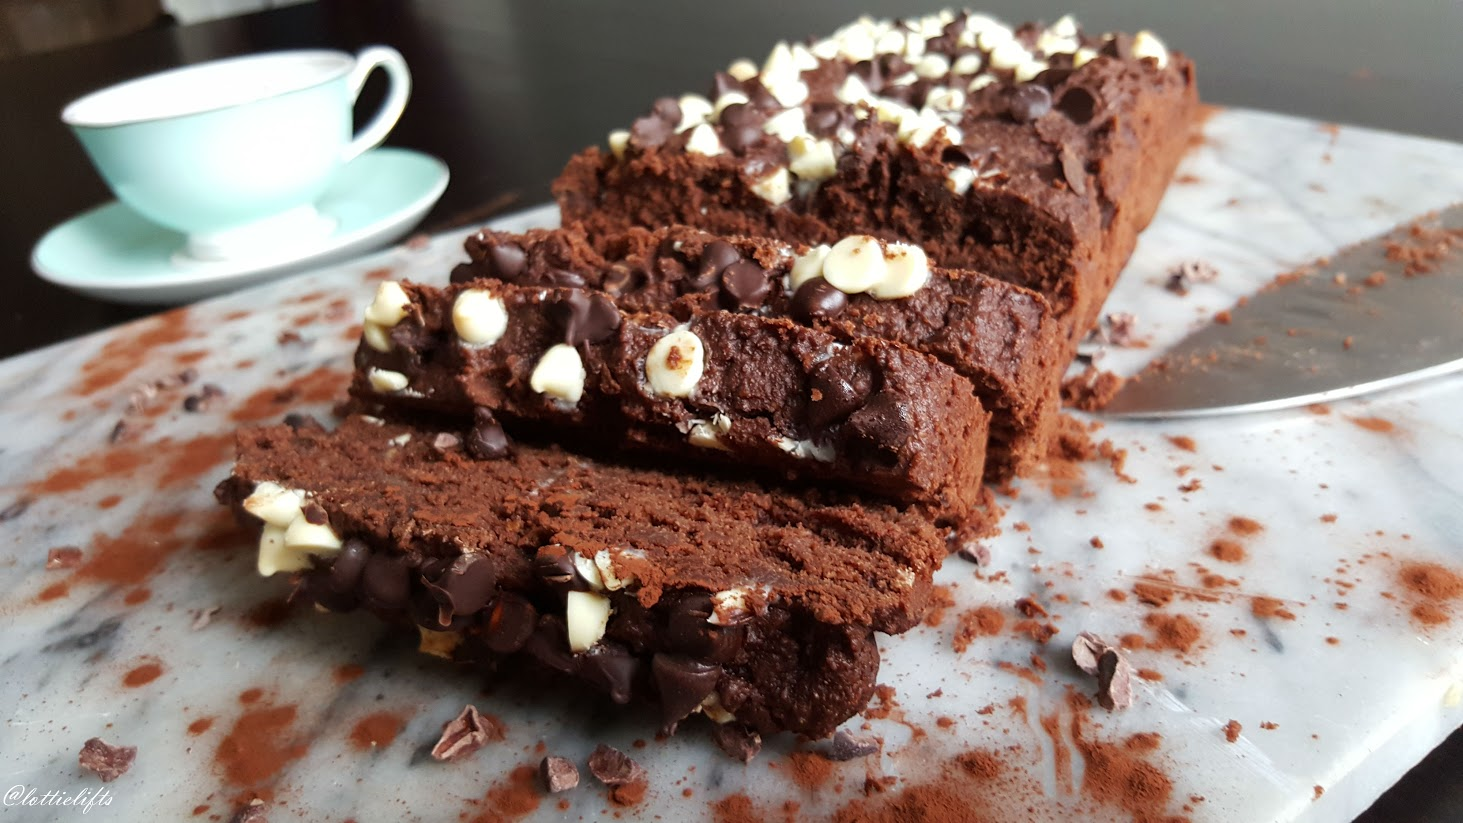 Almond Meal And Coconut Flour Chocolate Cake